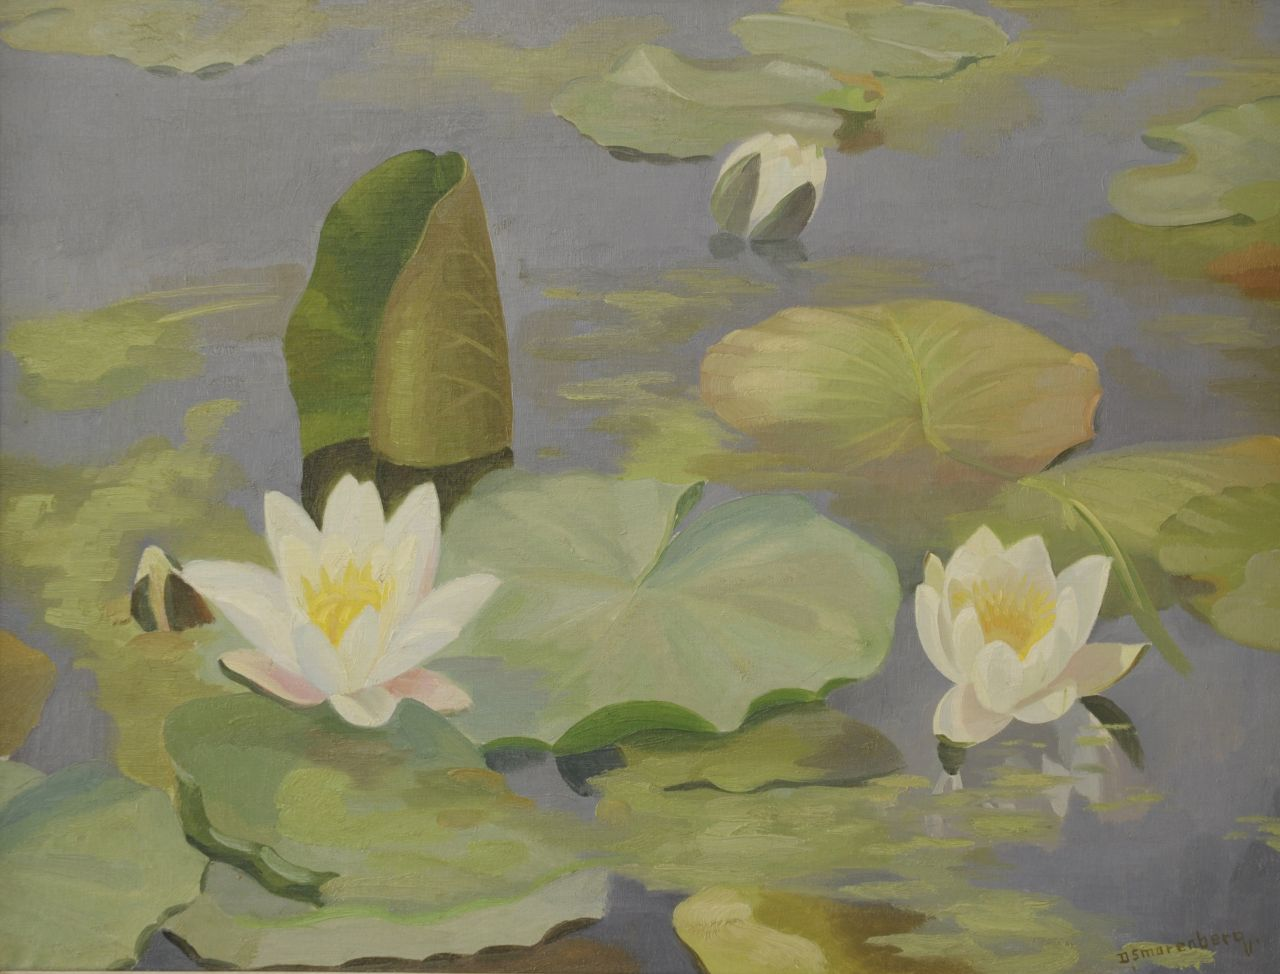 Smorenberg D.  | Dirk Smorenberg | Paintings offered for sale | Water Lilies, oil on panel 45.0 x 60.0 cm, signed l.r.